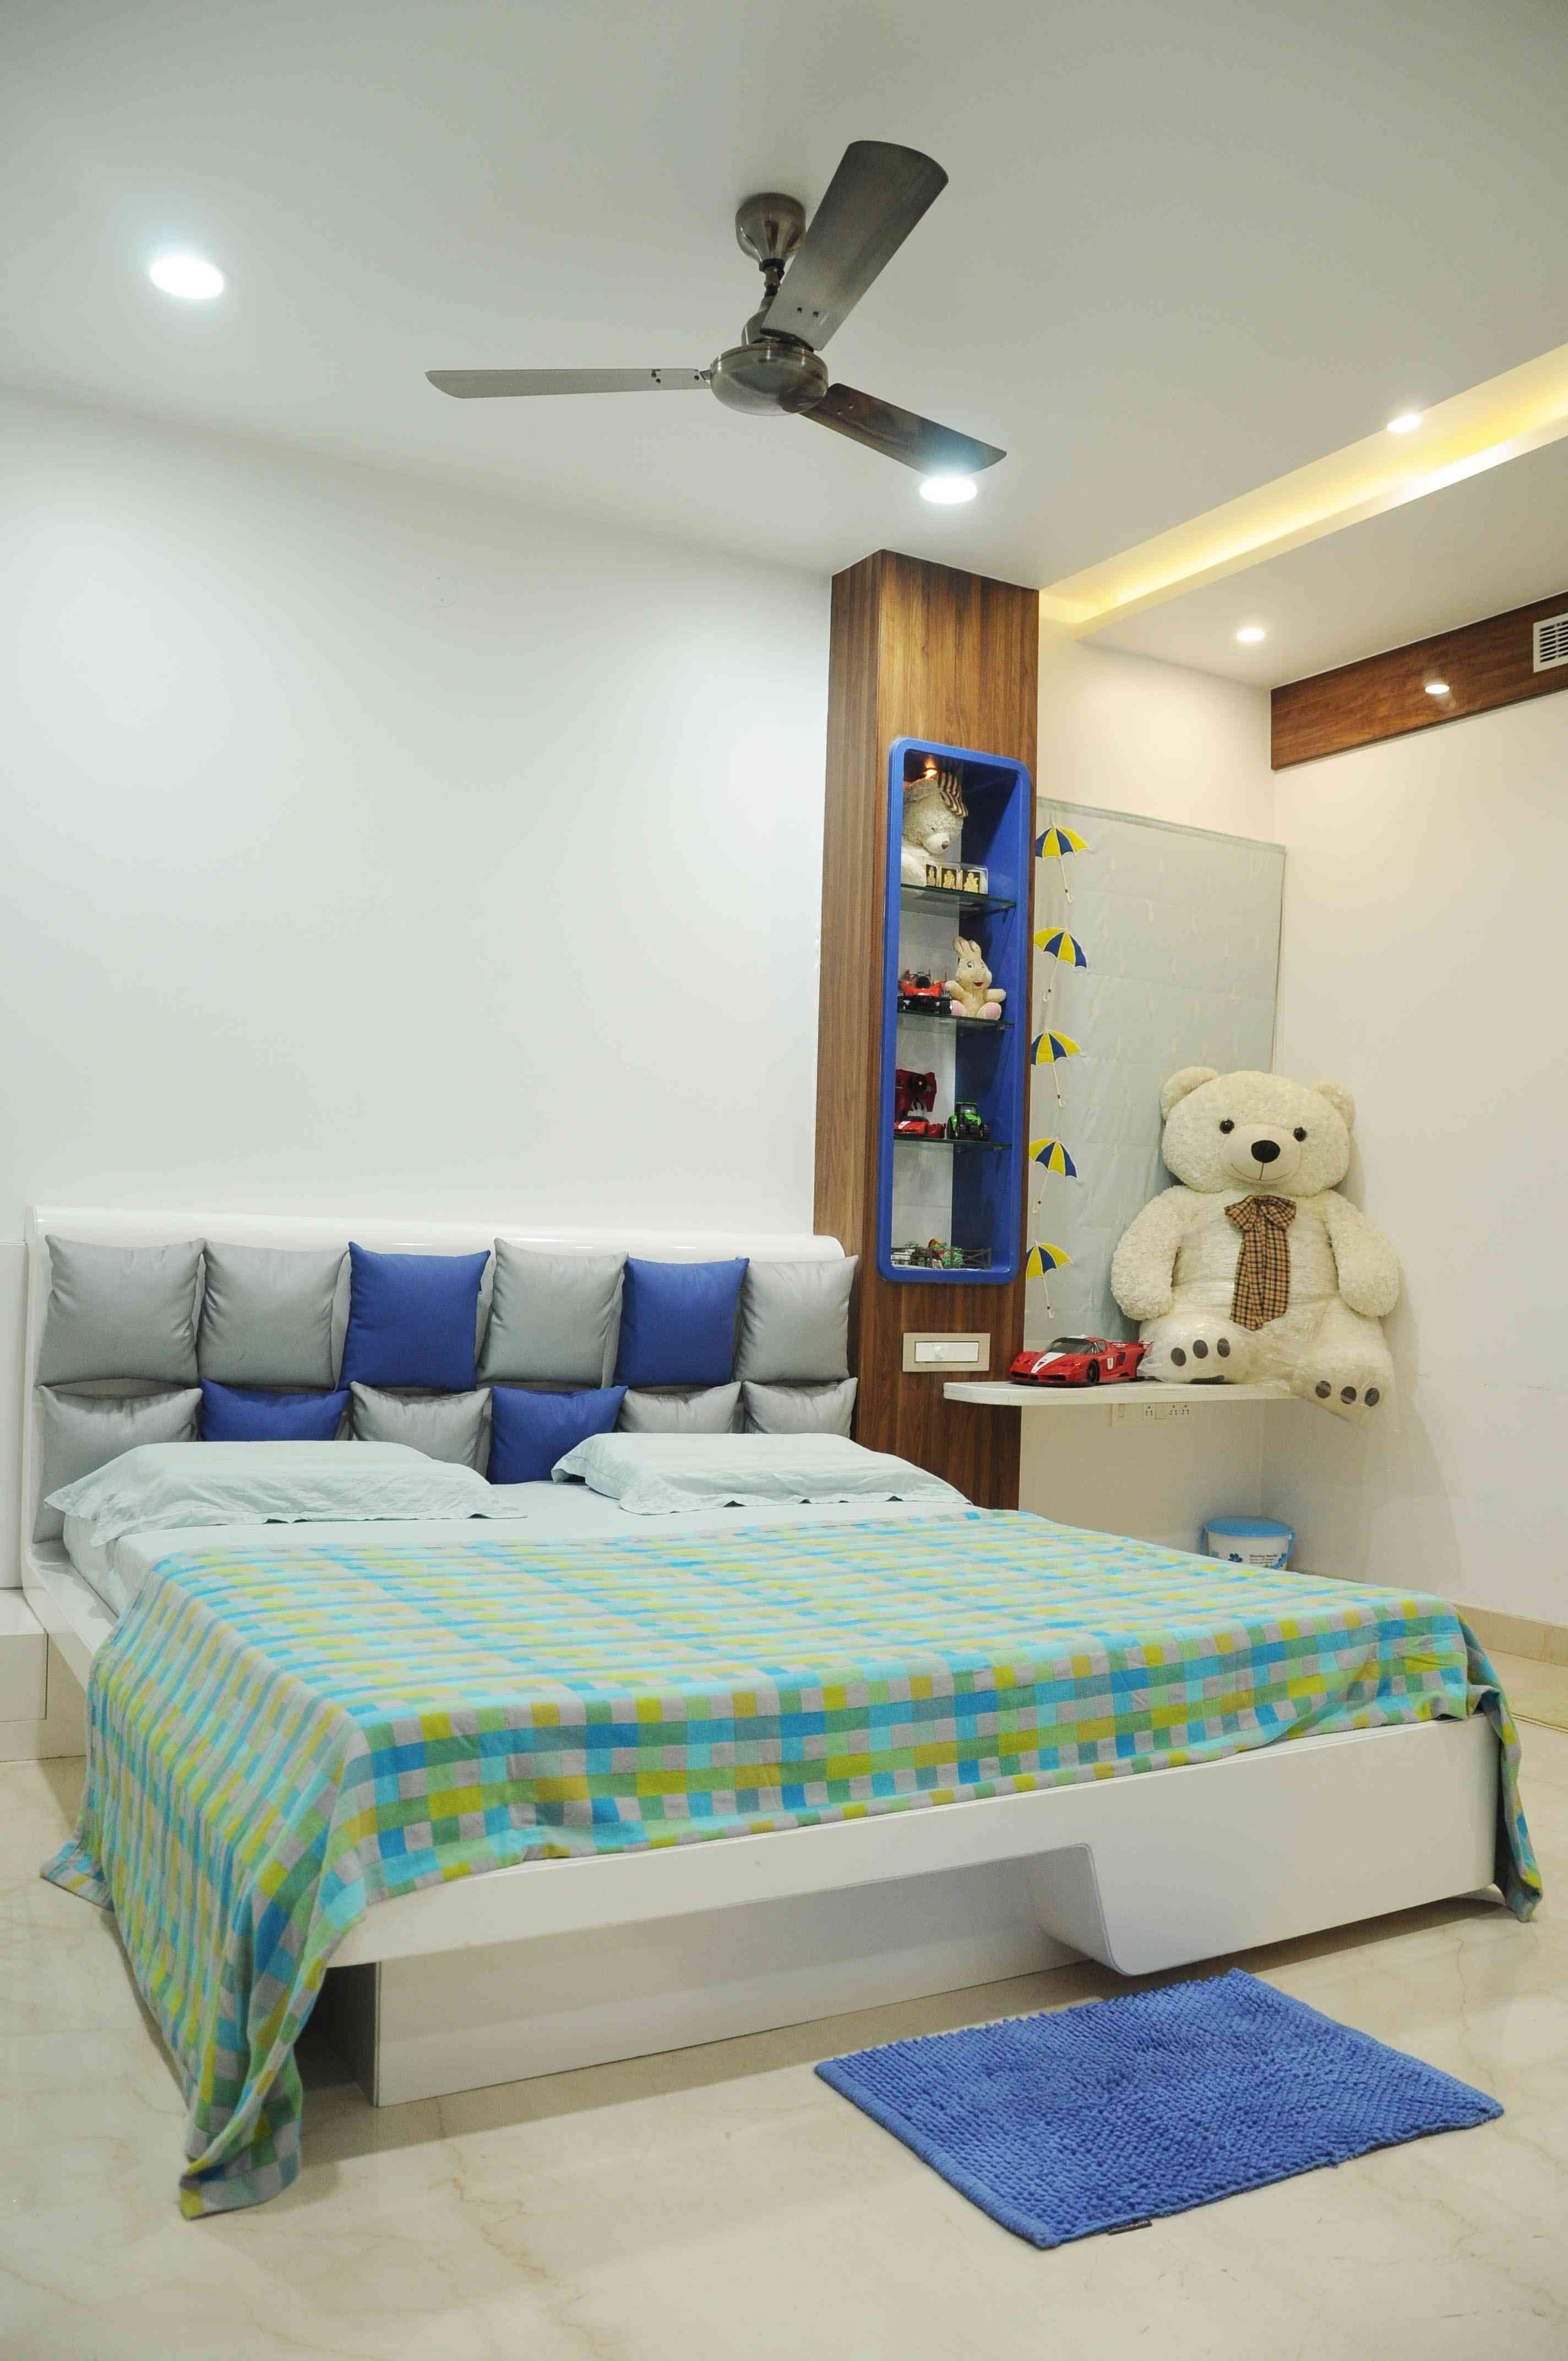 Kids Bedroom with soft toys designed by Samanth gowda ...